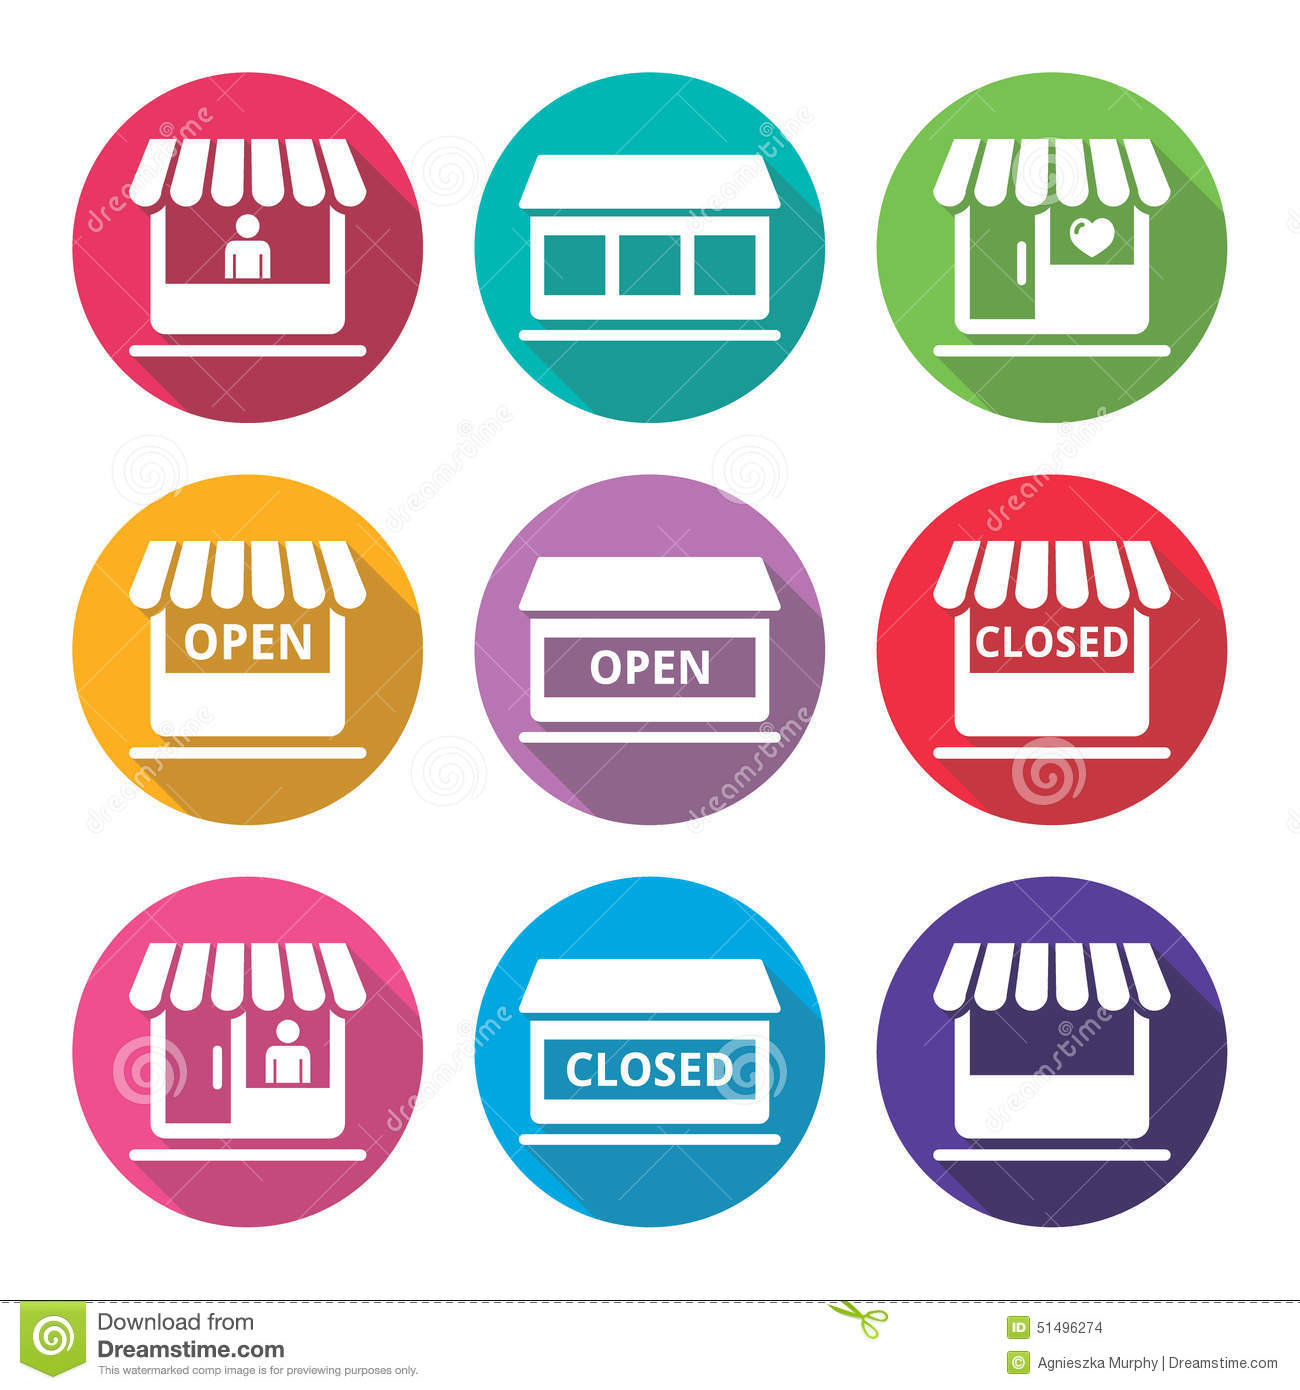 We help Irish online shoppers buy from Irish, UK and European clothes and fashion websites who deliver to Ireland AND who ship from within the EU - meaning you WON'T pay Customs or .